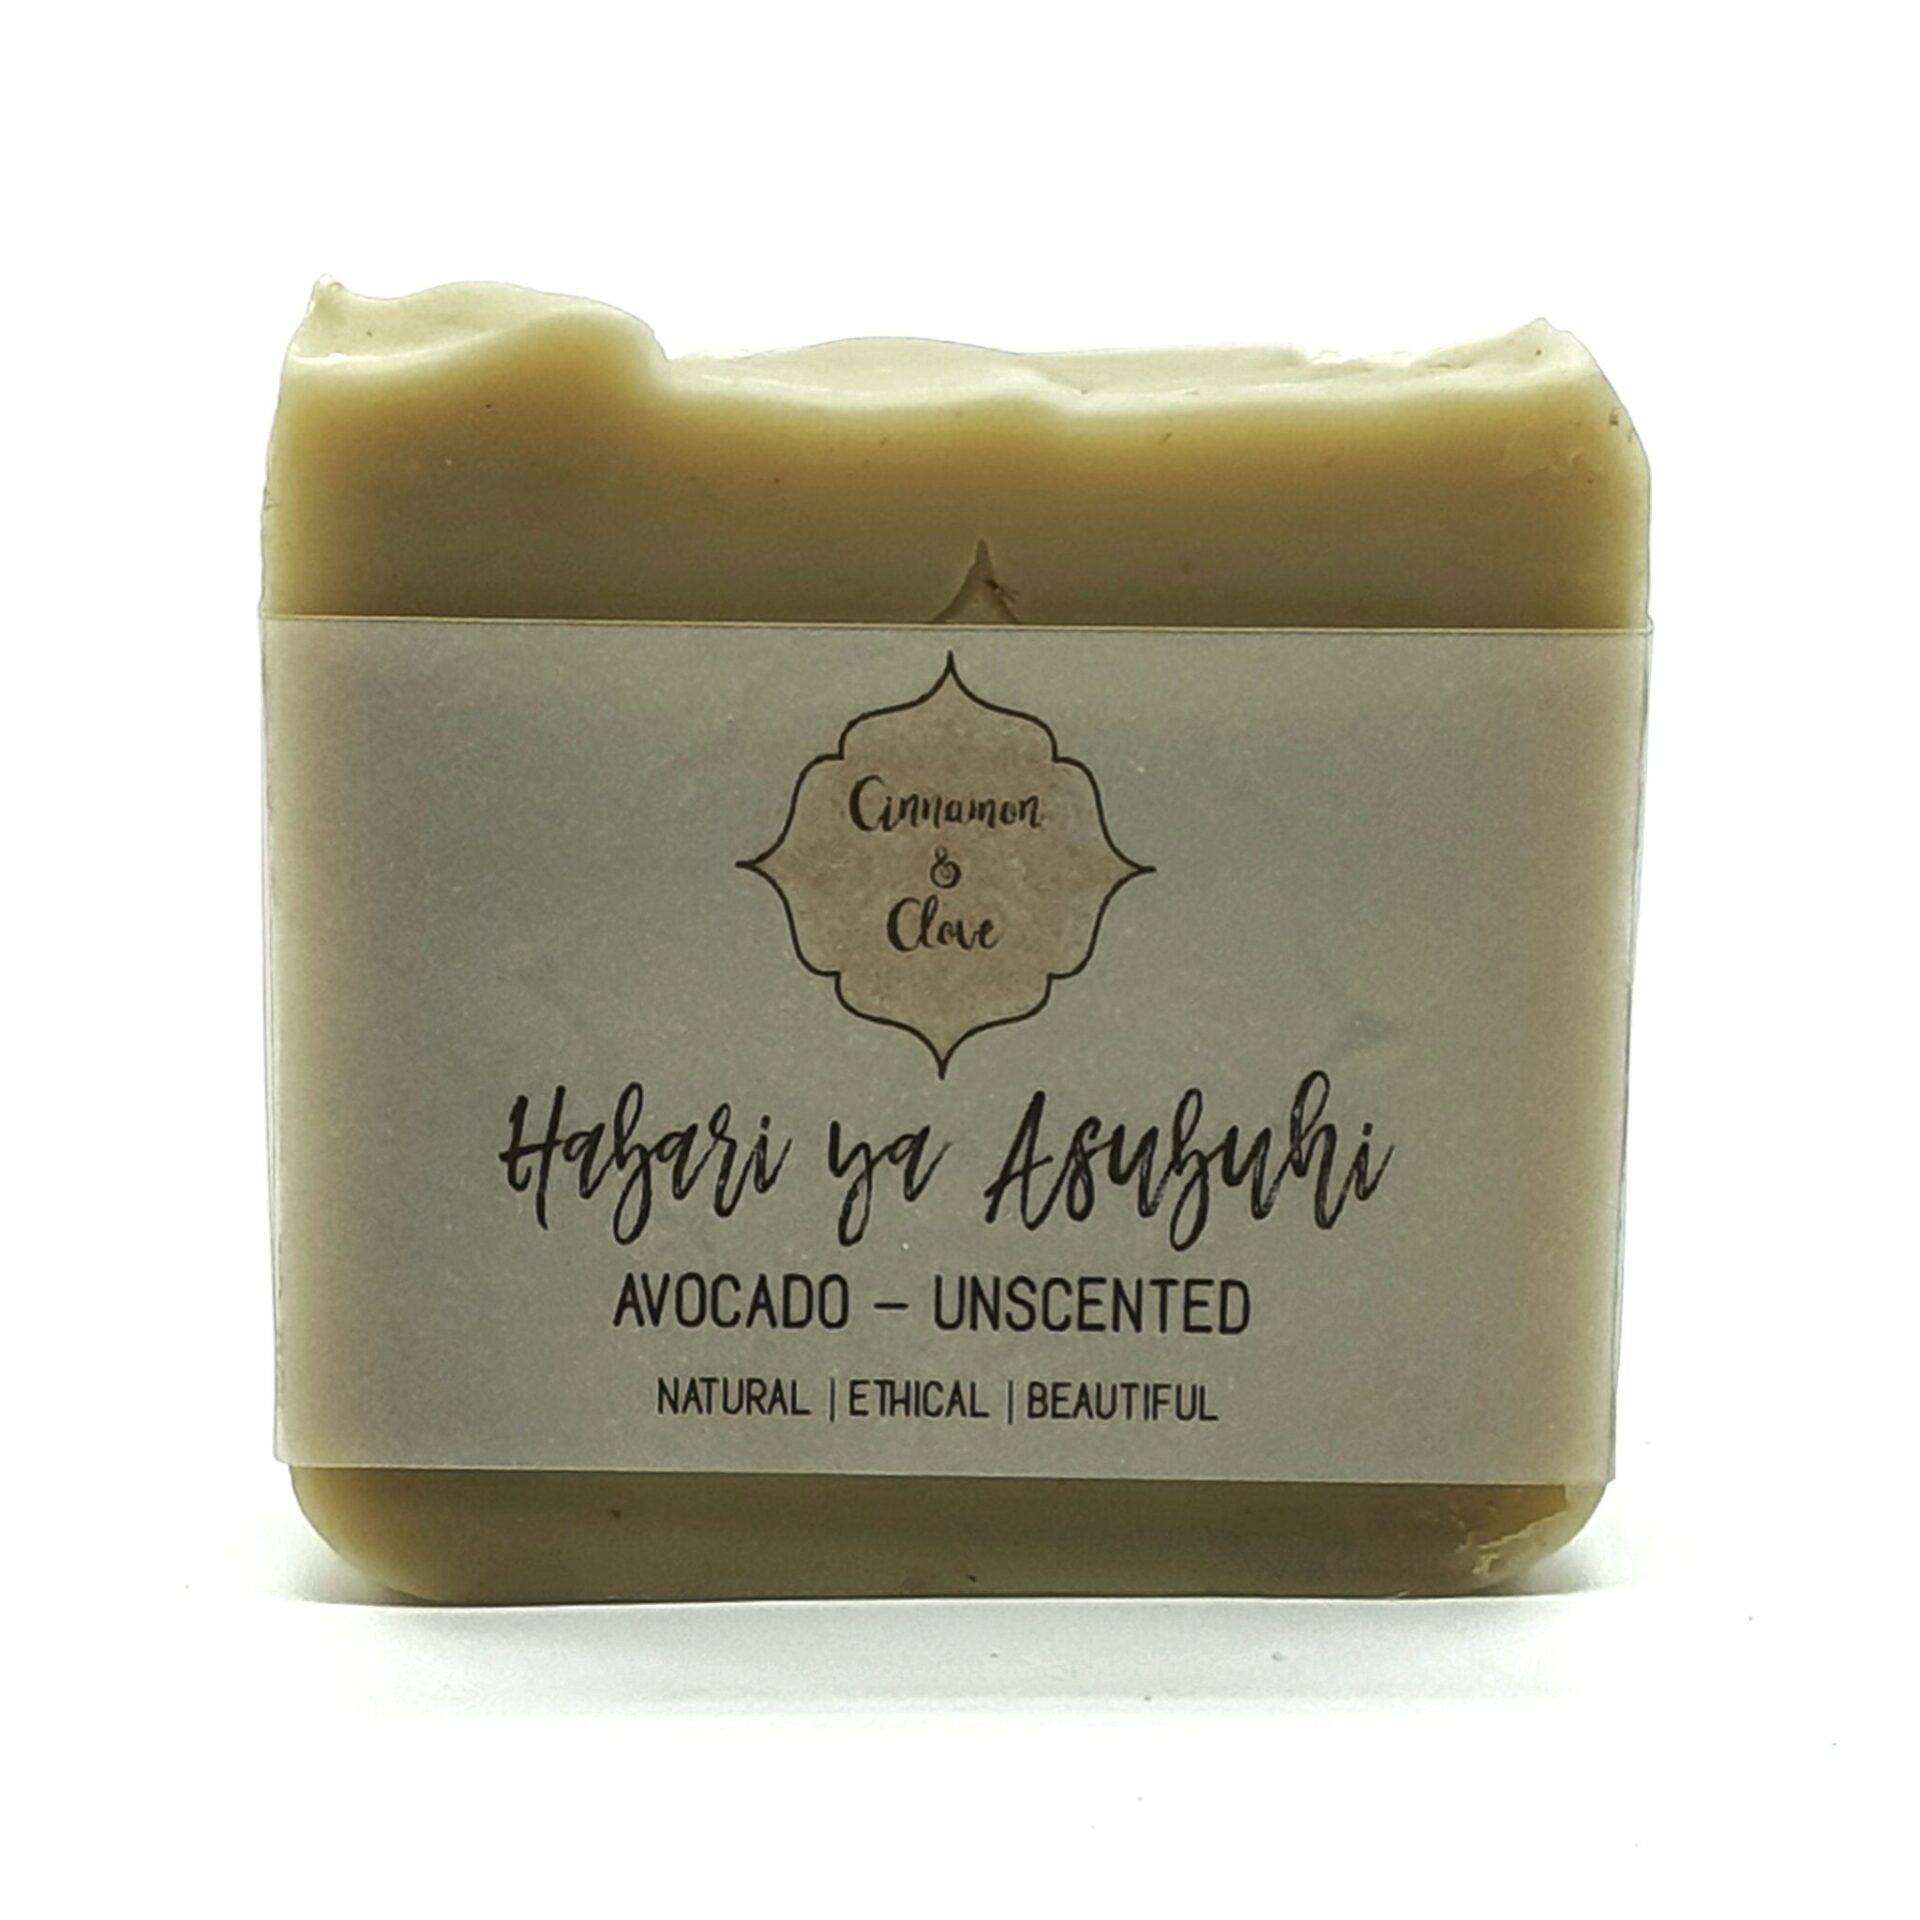 Habari Ya Asubuhi – Handcrafted All Natural Artisan Soap With Avocado By Cinnamon And Clove (Prahran)